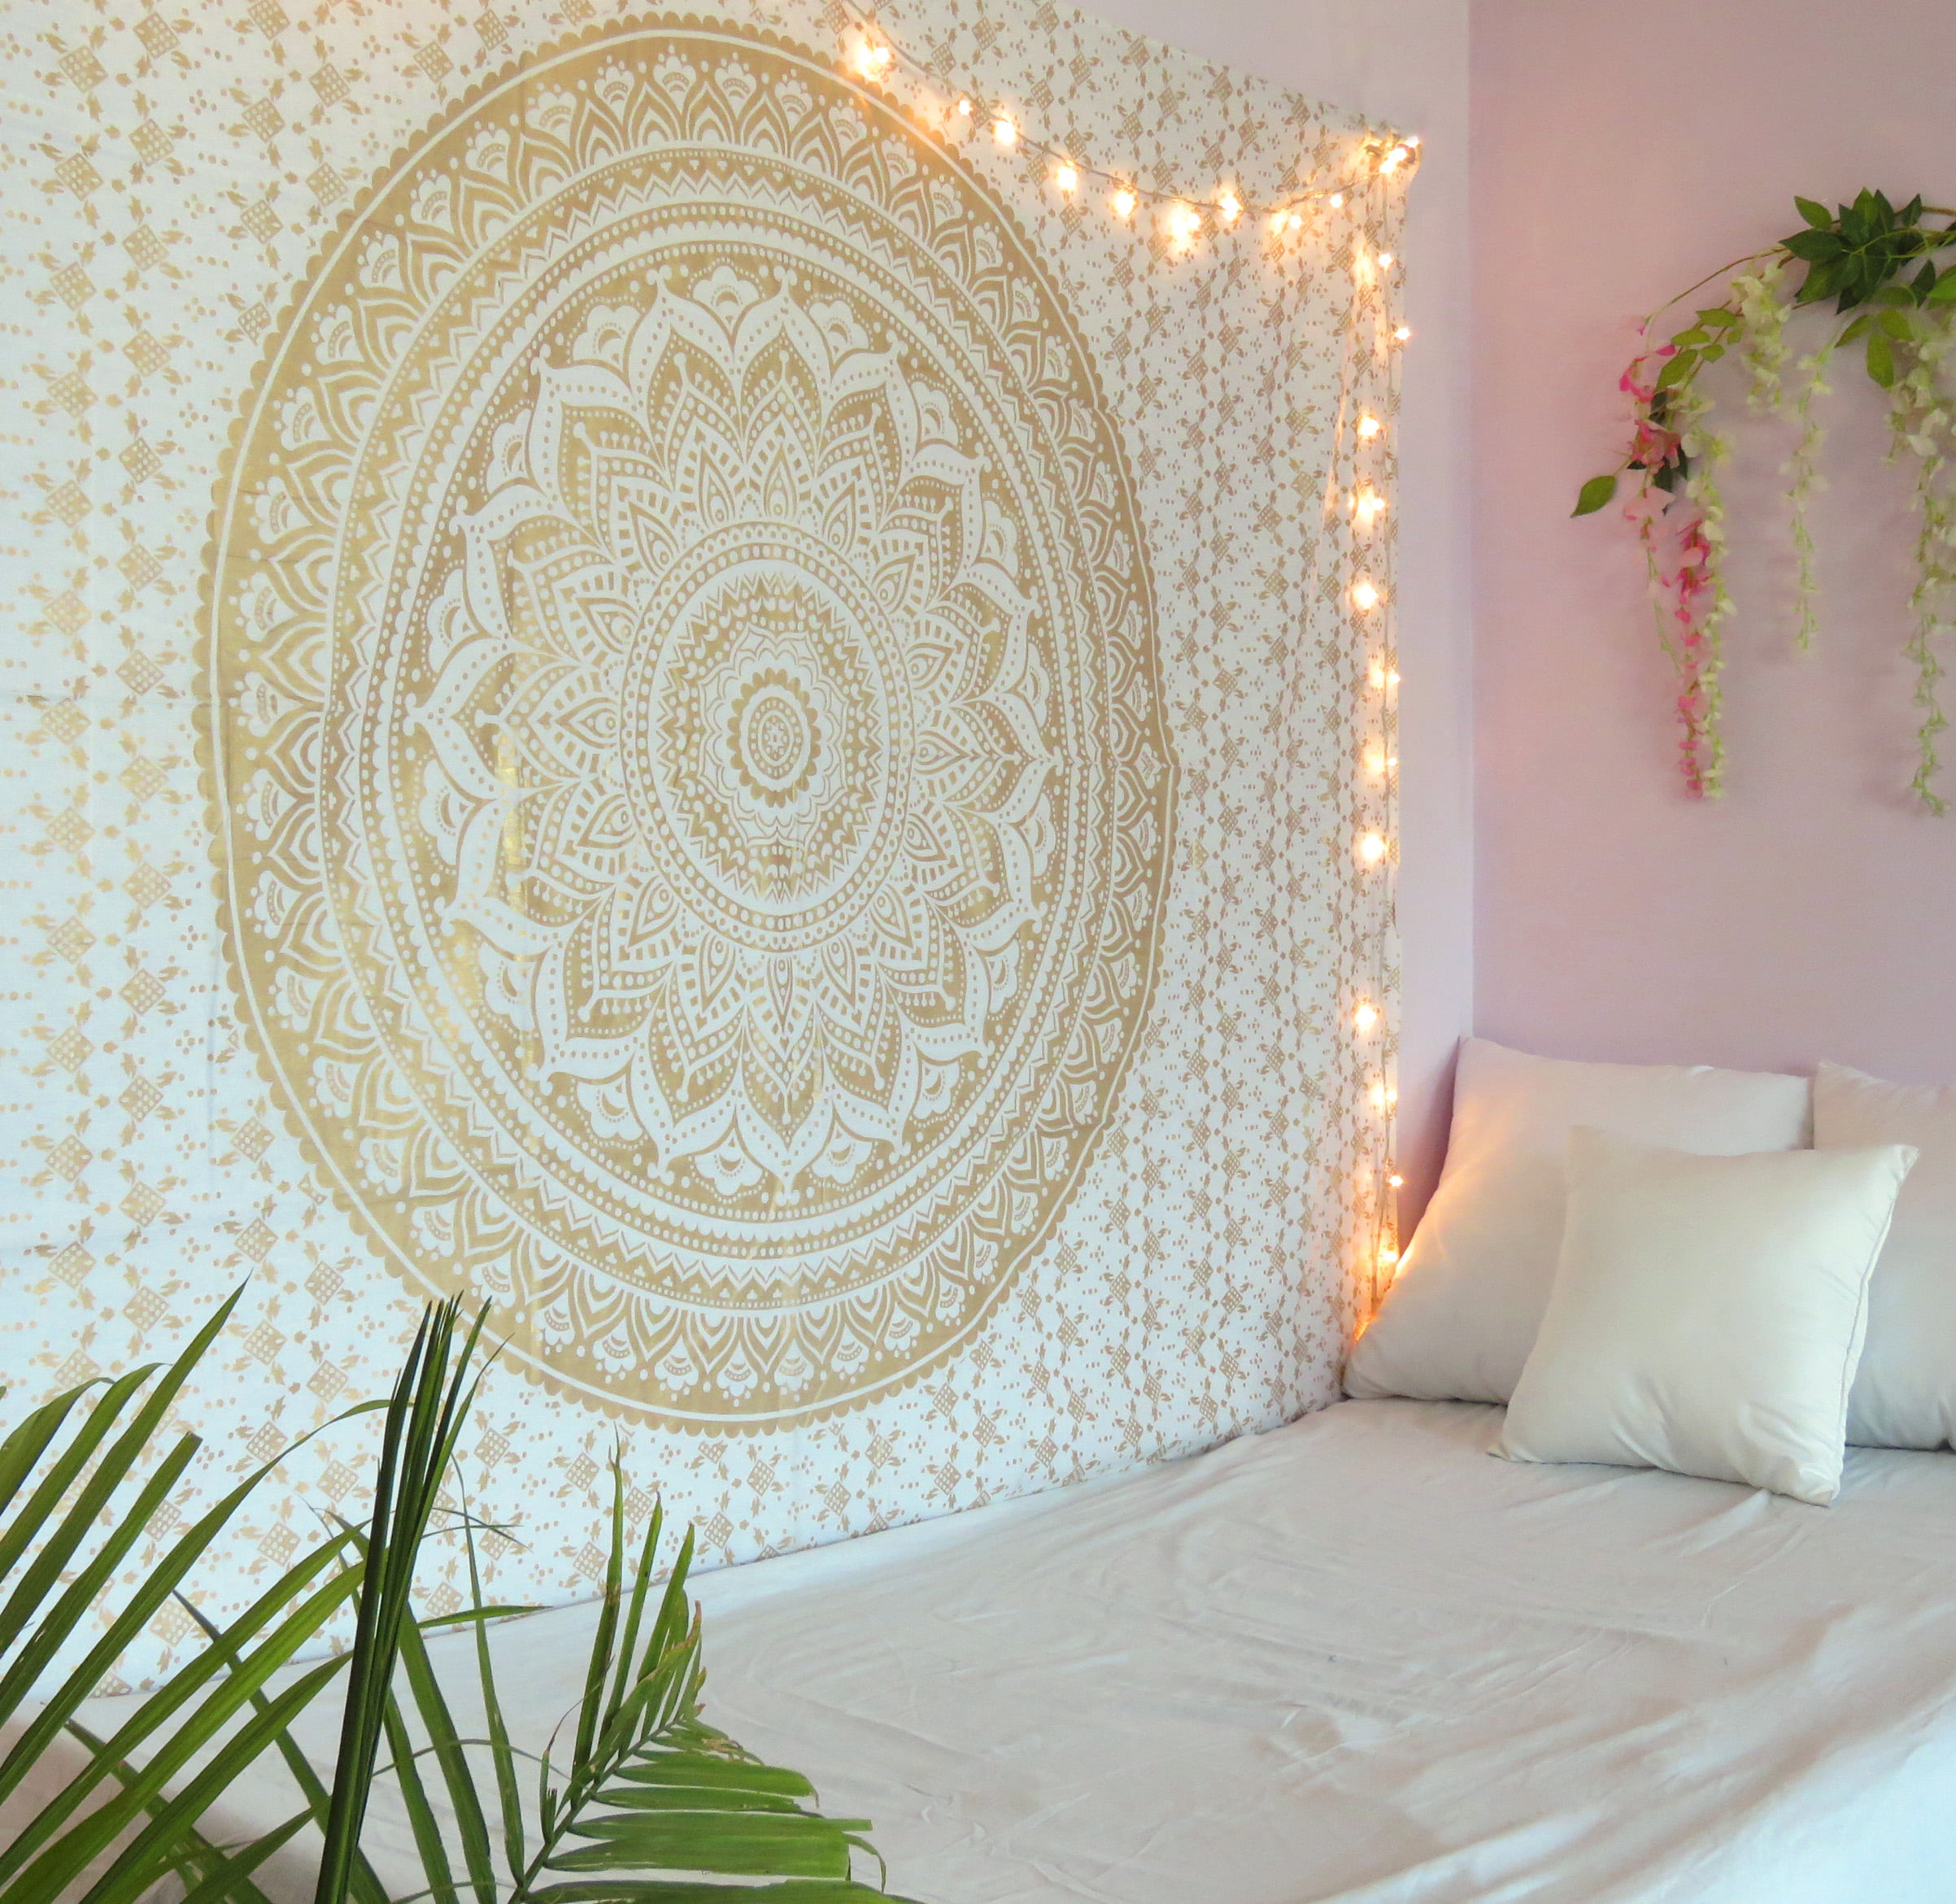 Golden Mandala Tapestry Wall Hanging Twin Size Boho Dorm Room Indian Ombre Tapestries Beach Blankets Picnic Throws... by Oussum